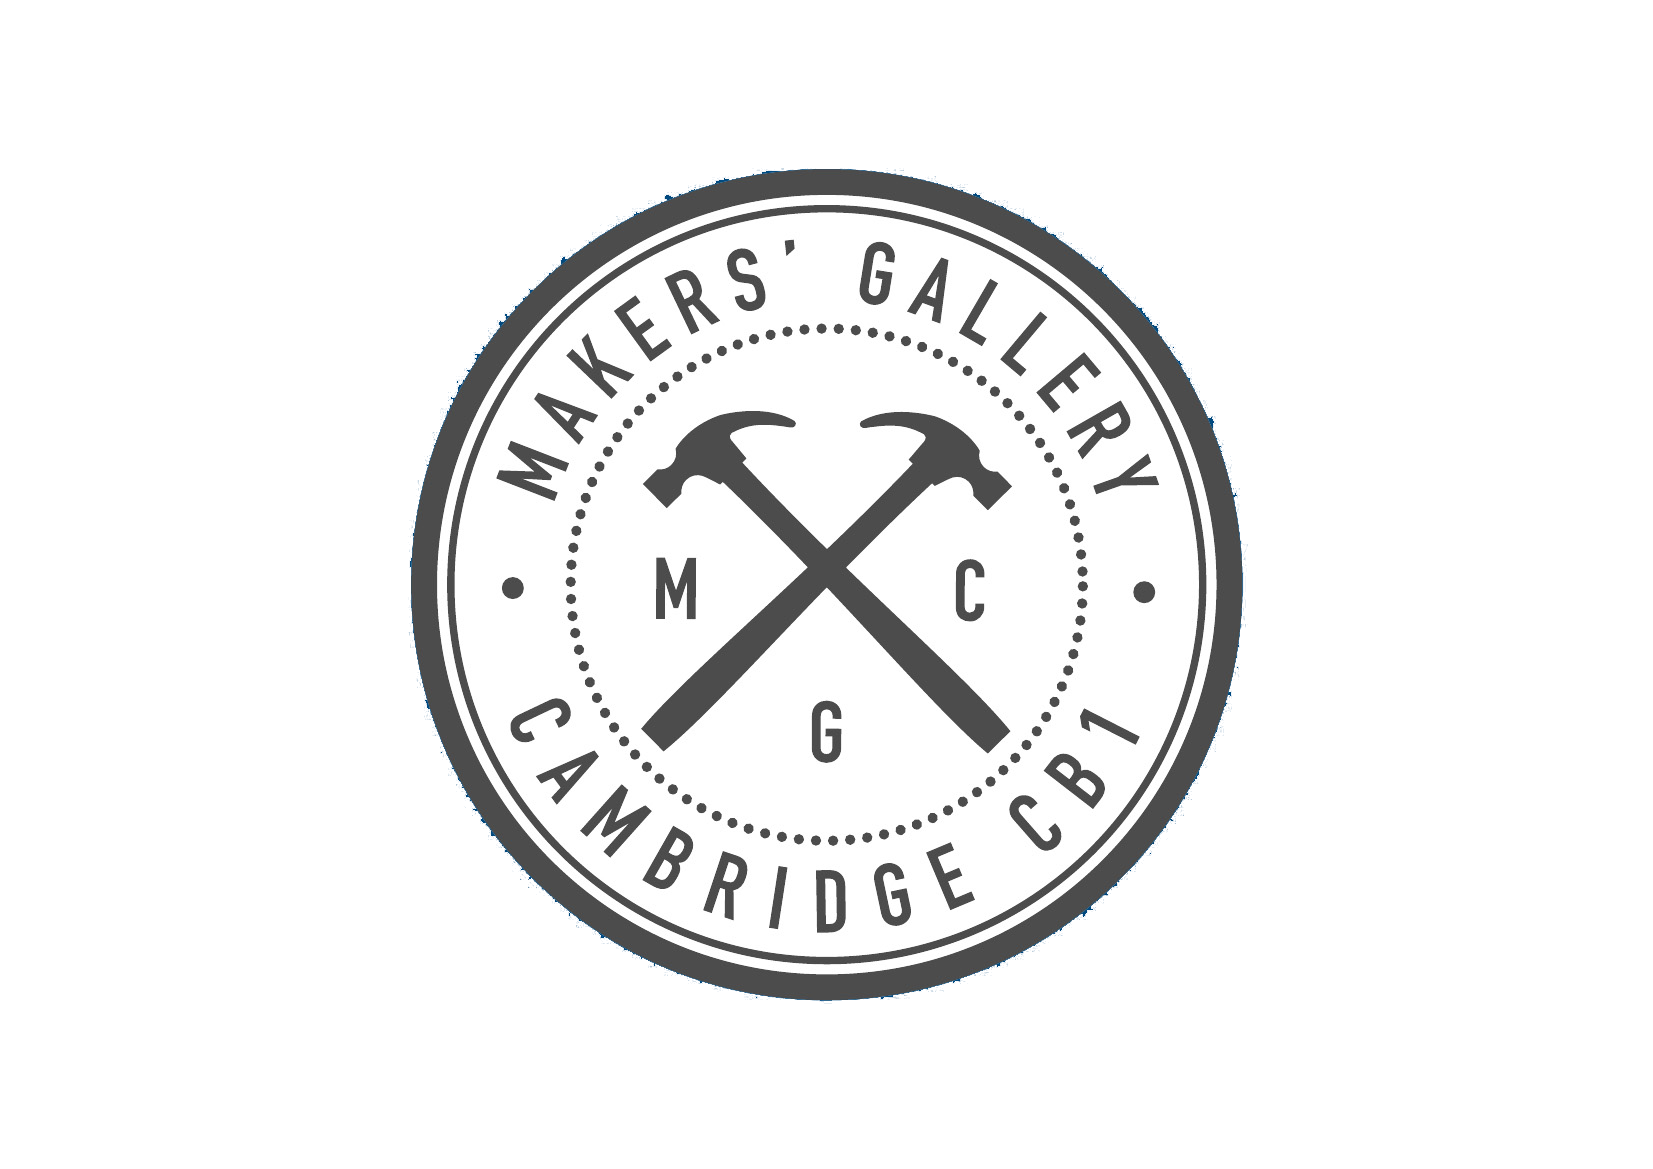 Makers' Gallery